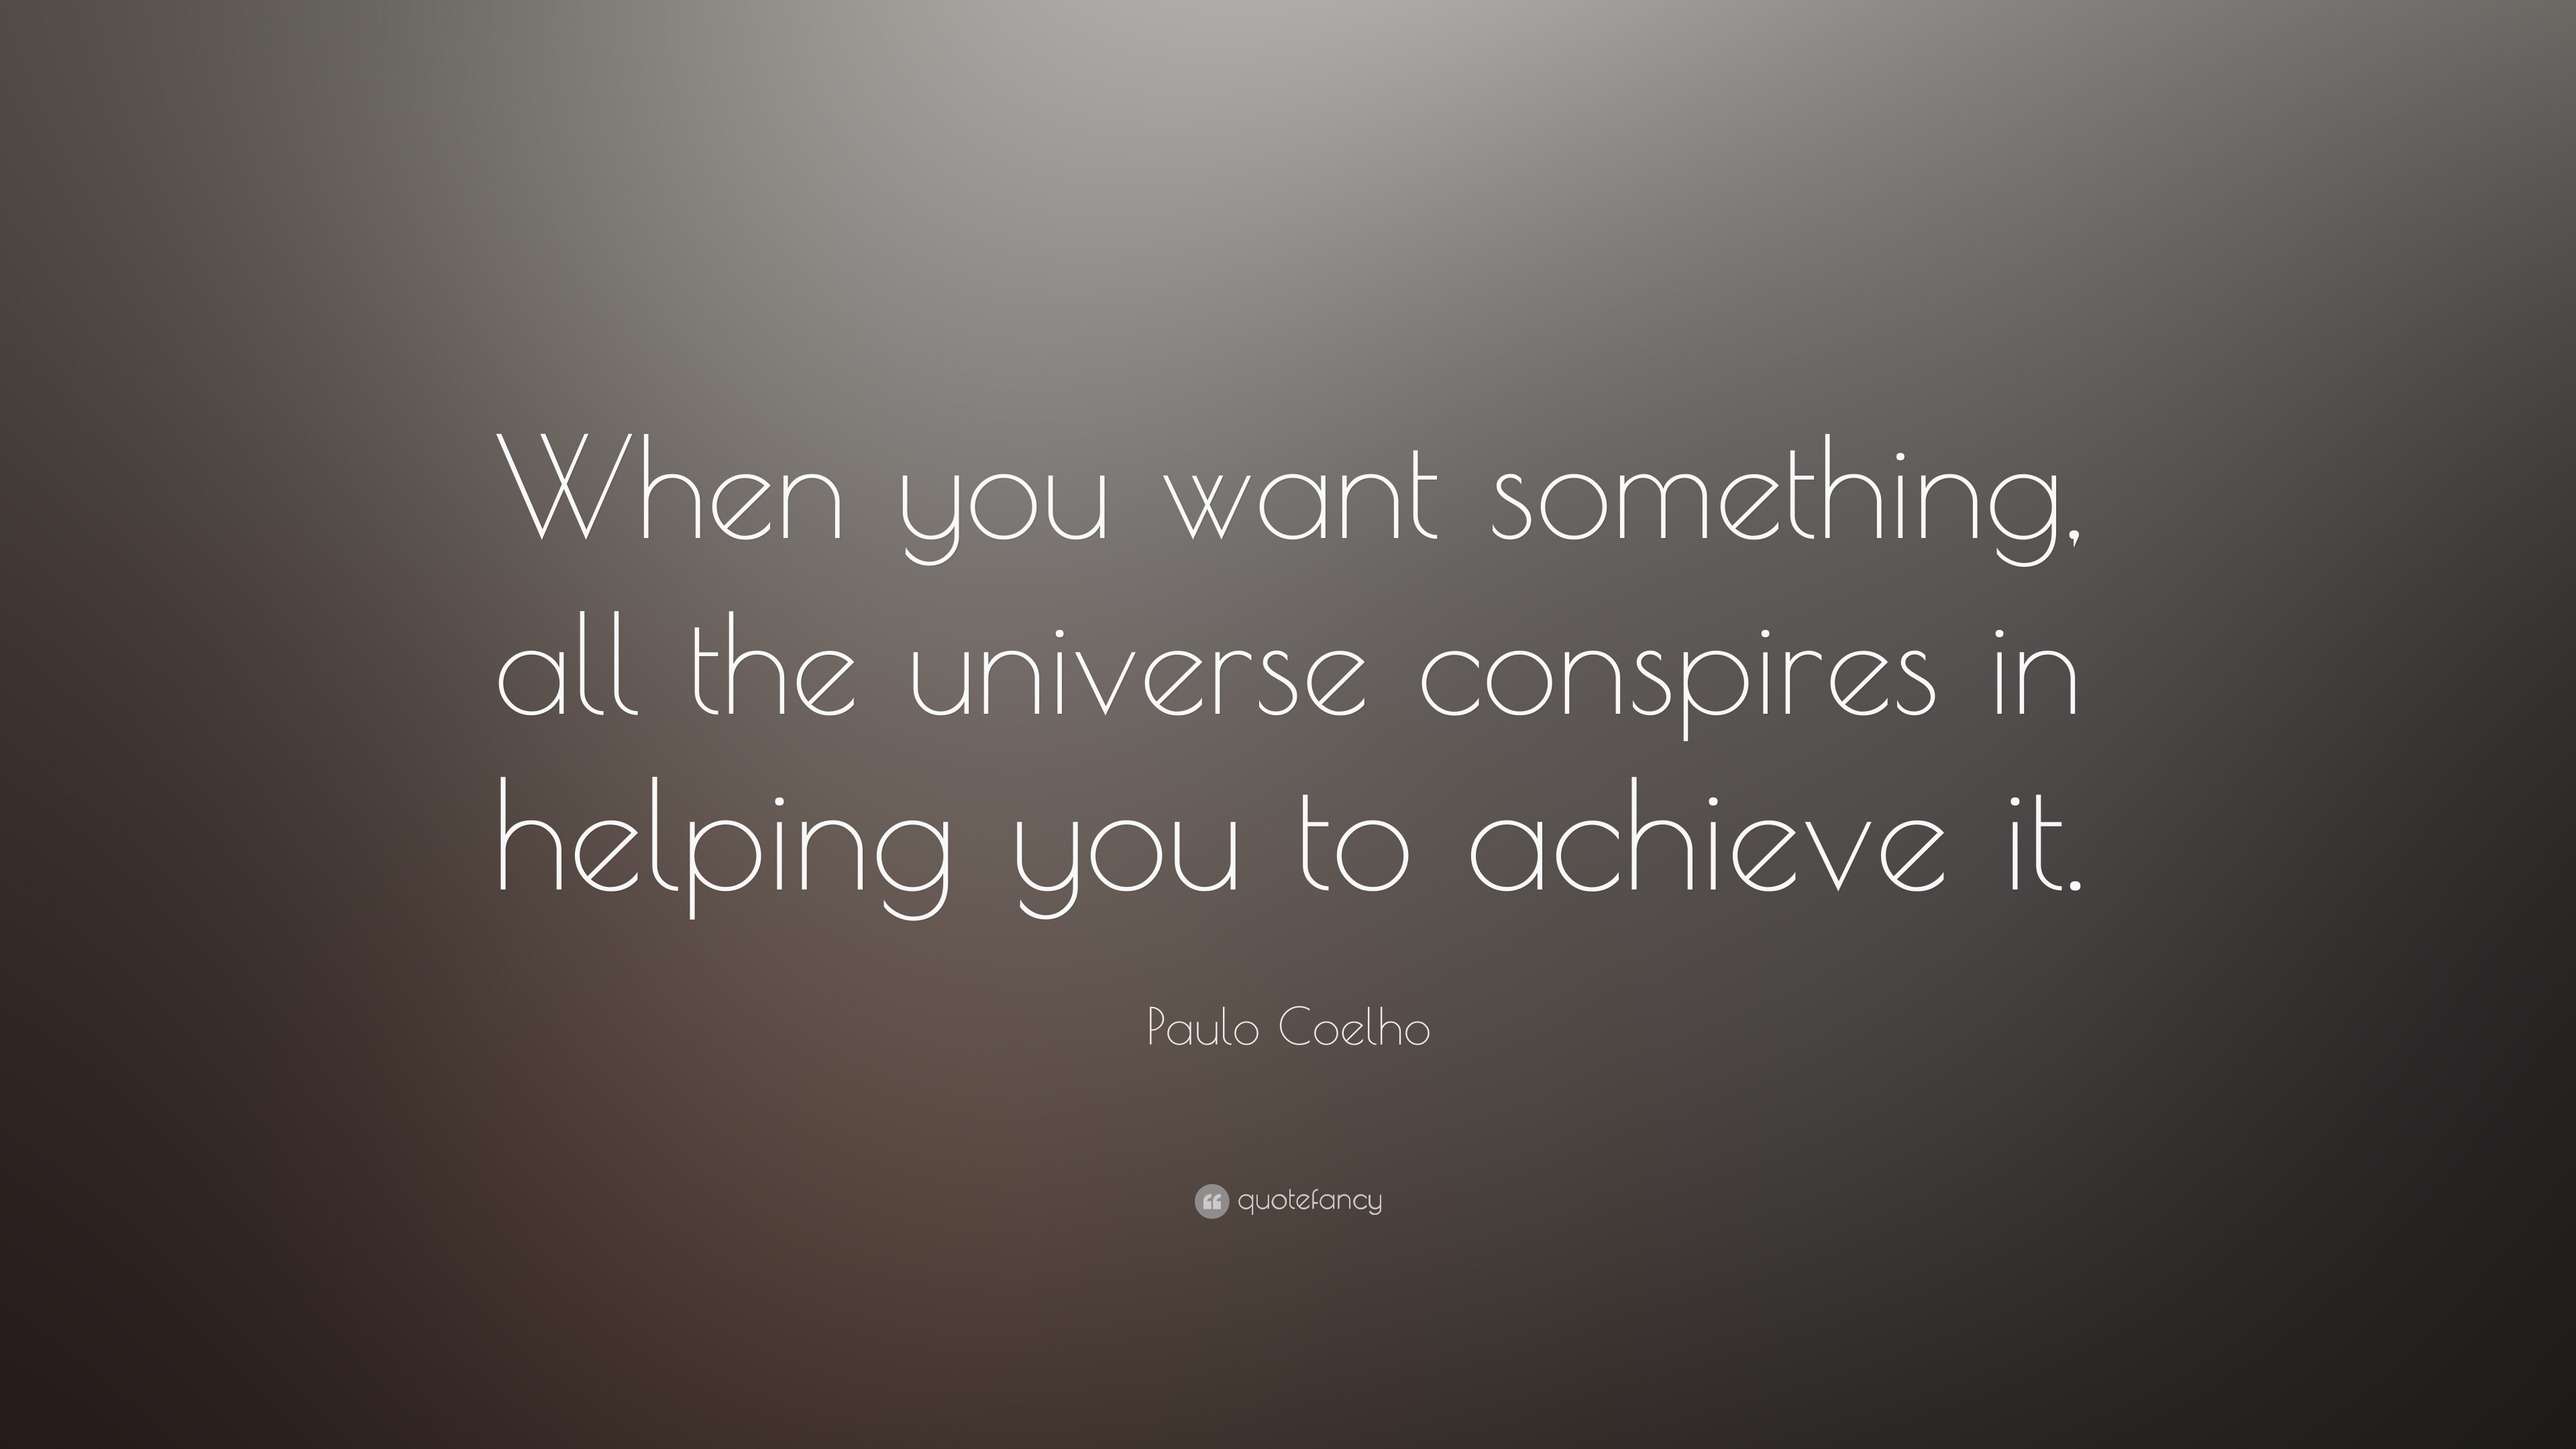 Paulo Coelho Quote When You Want Something All The Universe